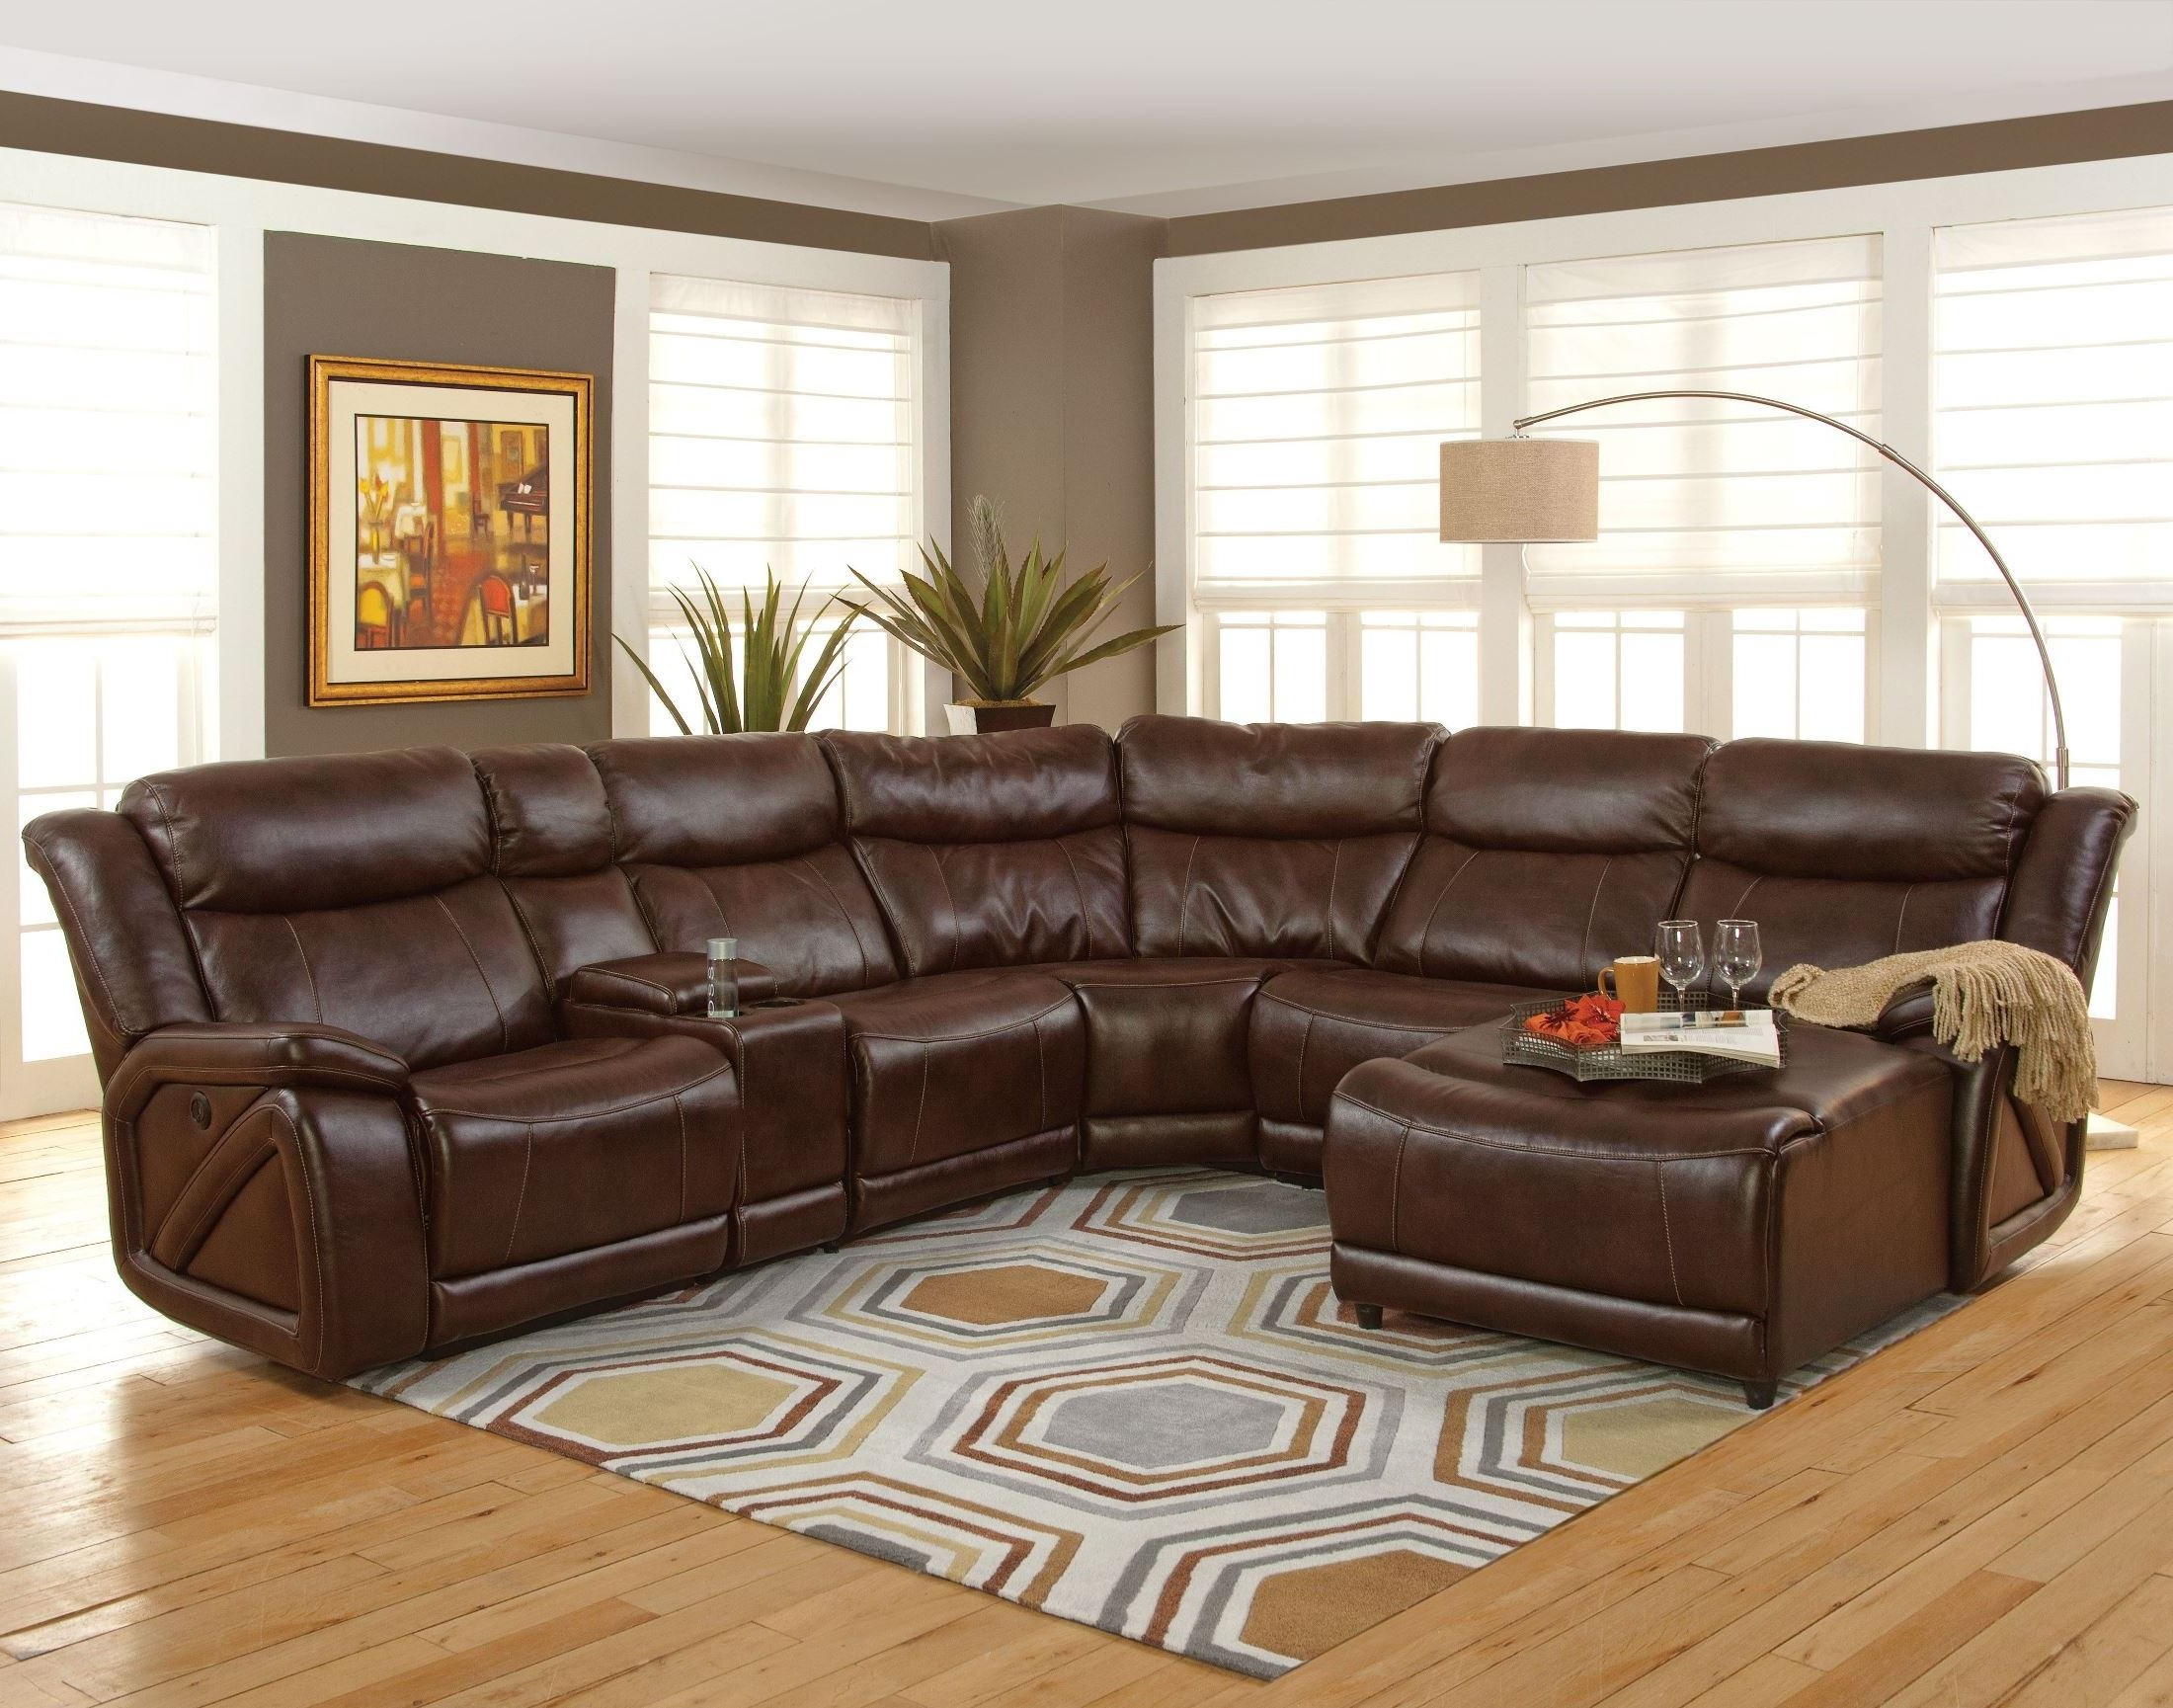 Turdur 2 Piece Sectionals With Laf Loveseat Pertaining To Recent Park Place Premier Brown Laf Sectional From New Classics (20 225 17l (View 10 of 20)